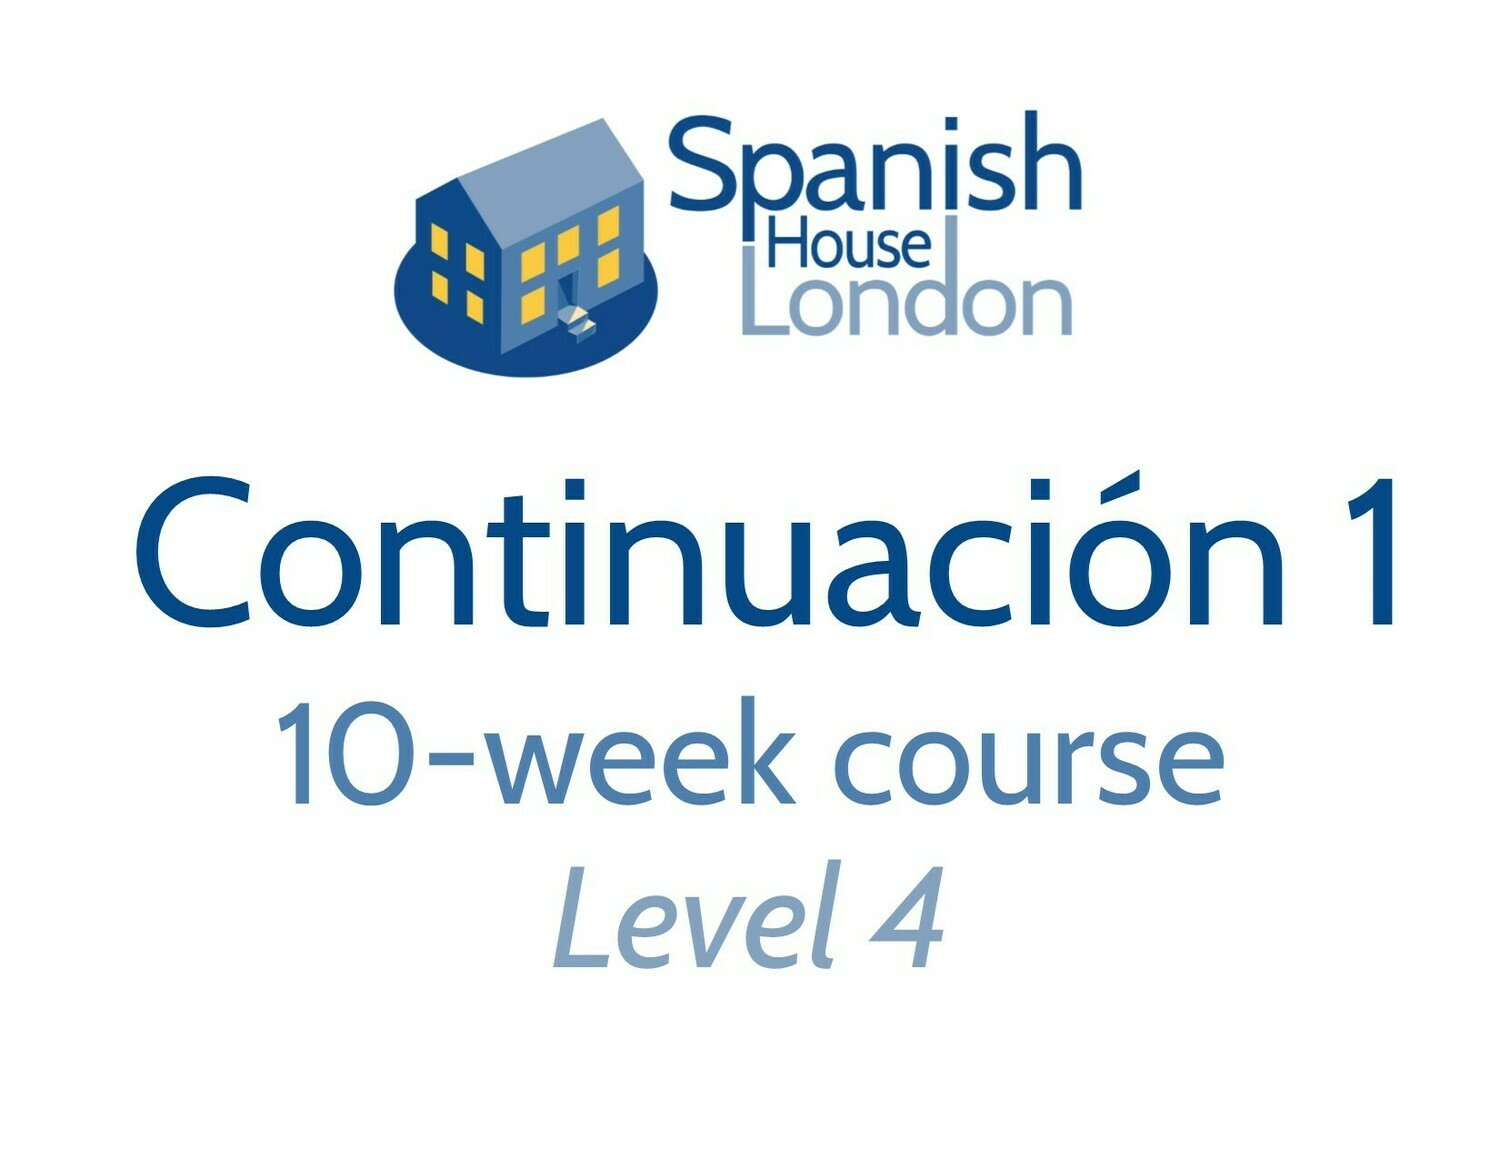 Continuacion 1 Course starting on 28th October at 7.30pm in Clapham North